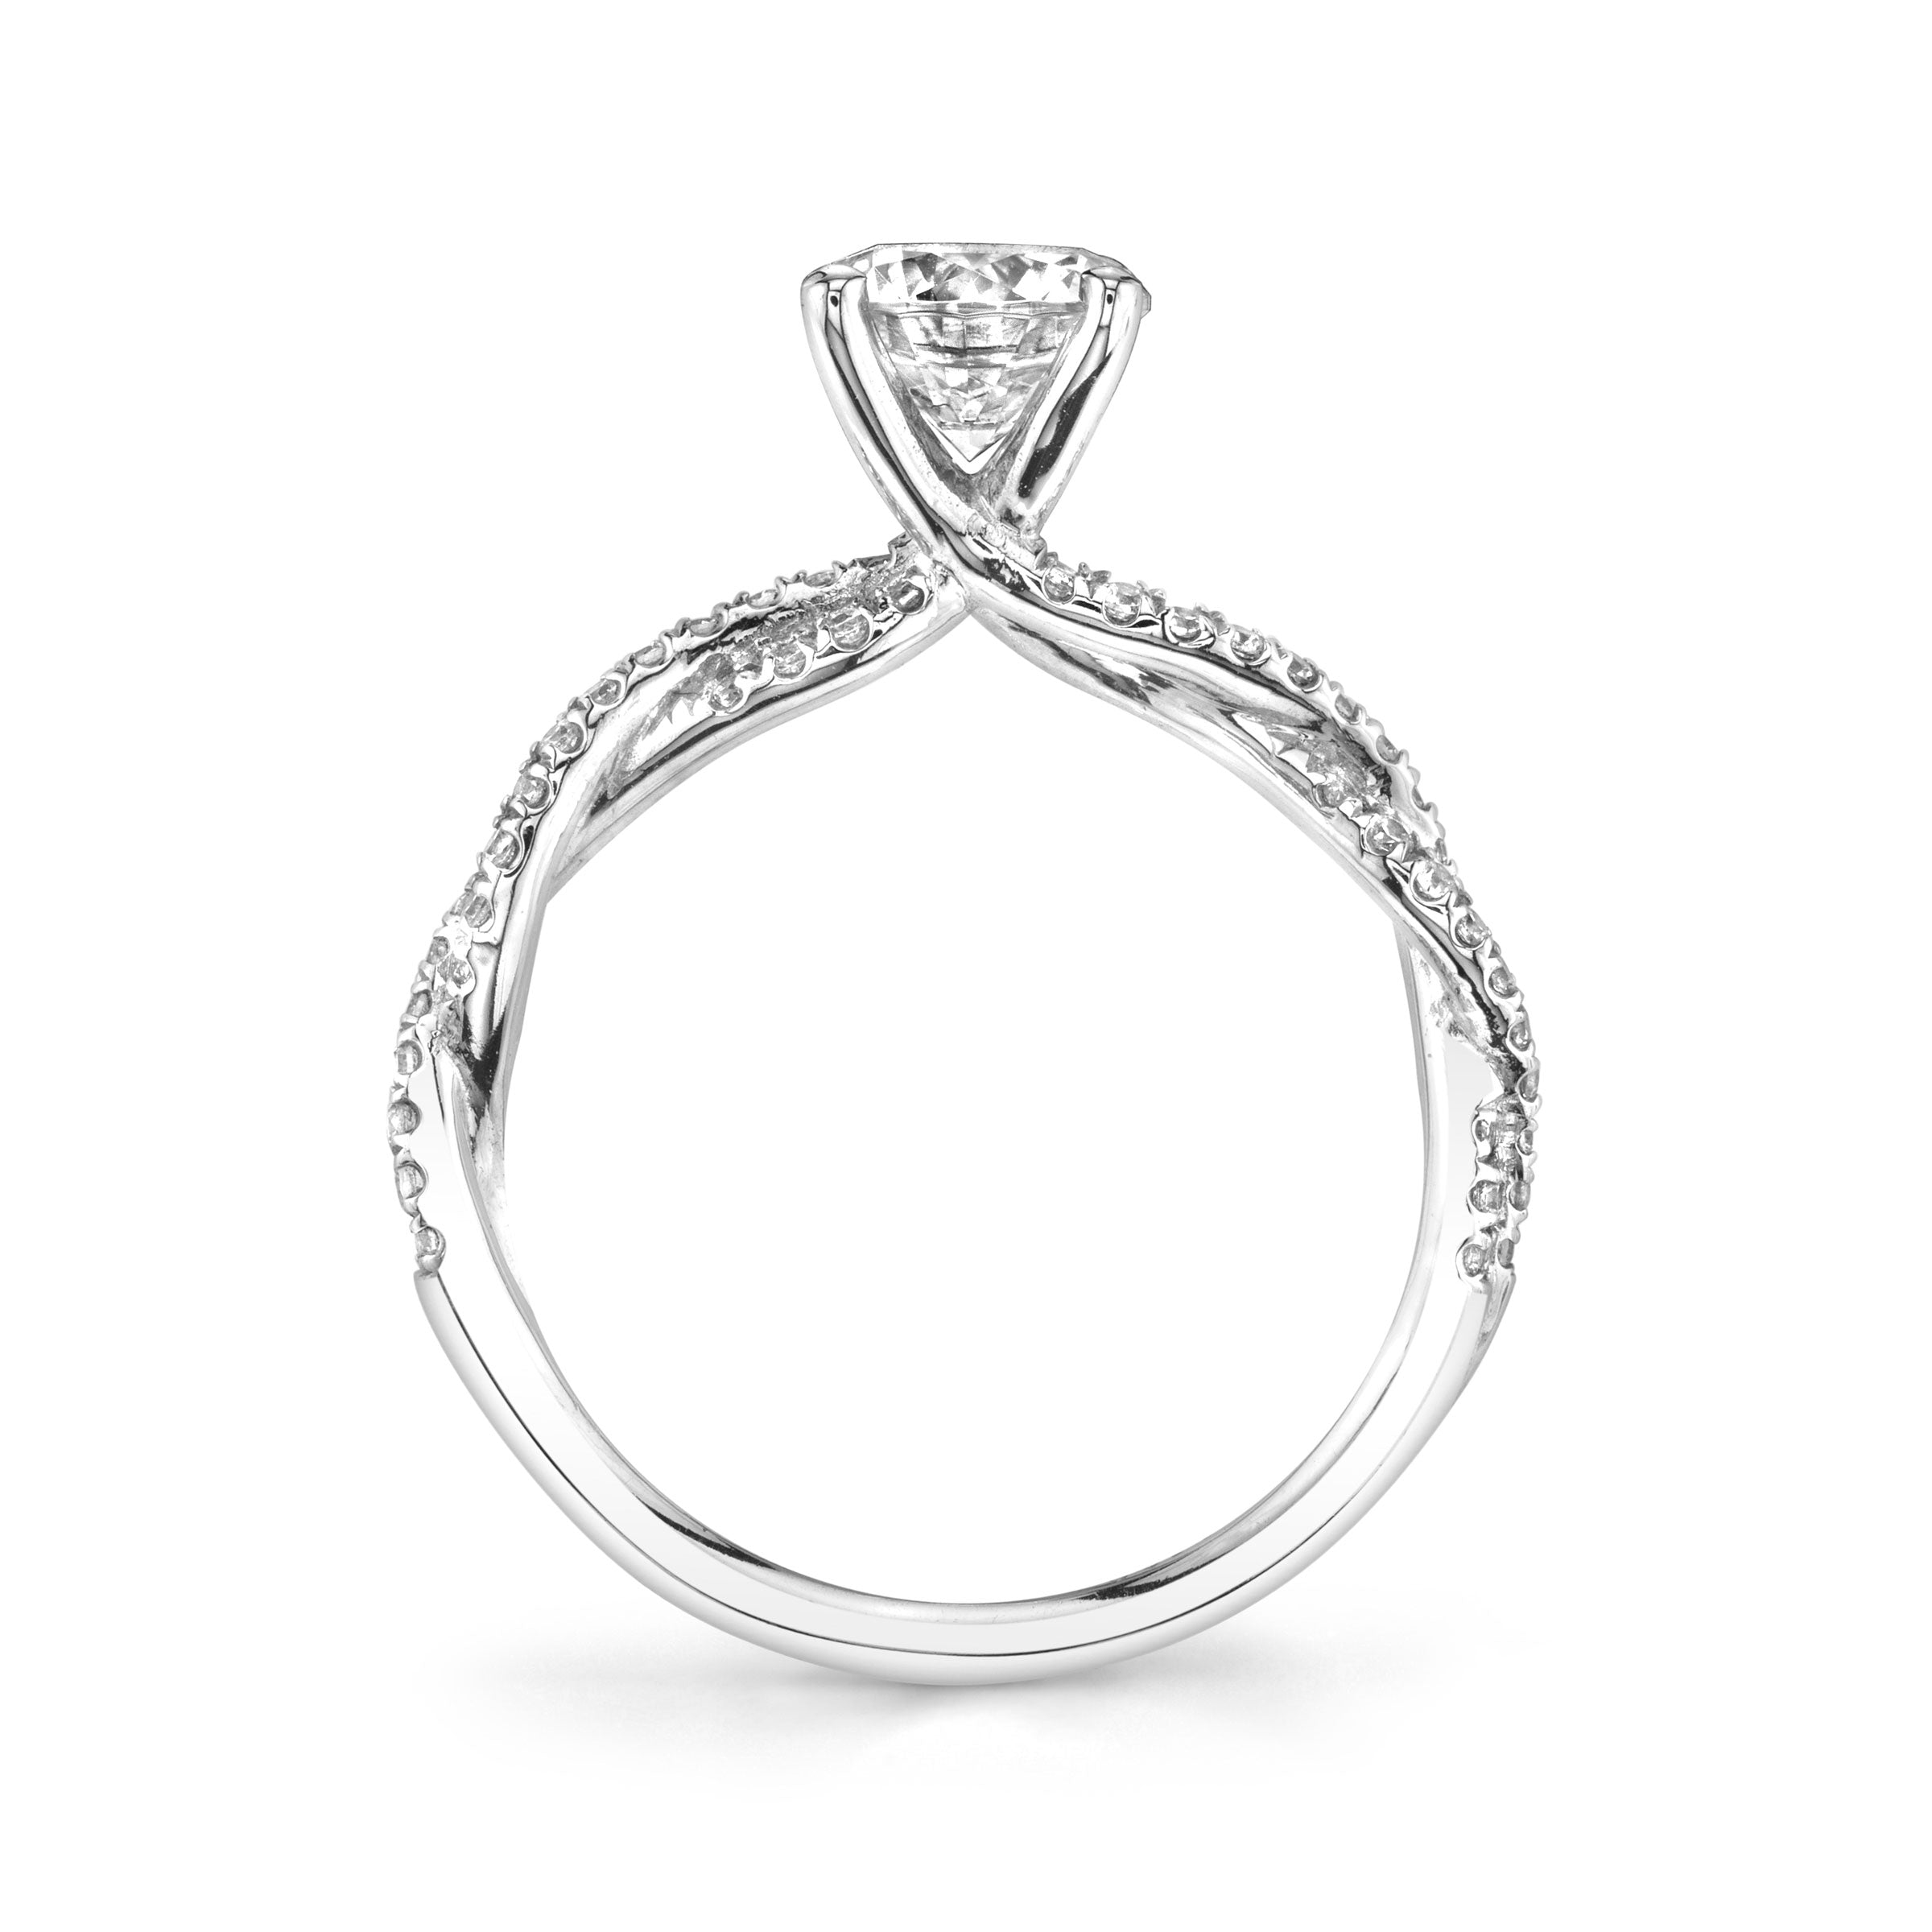 Ring Mounting with Twist Design by Sylvie, 14K White Gold